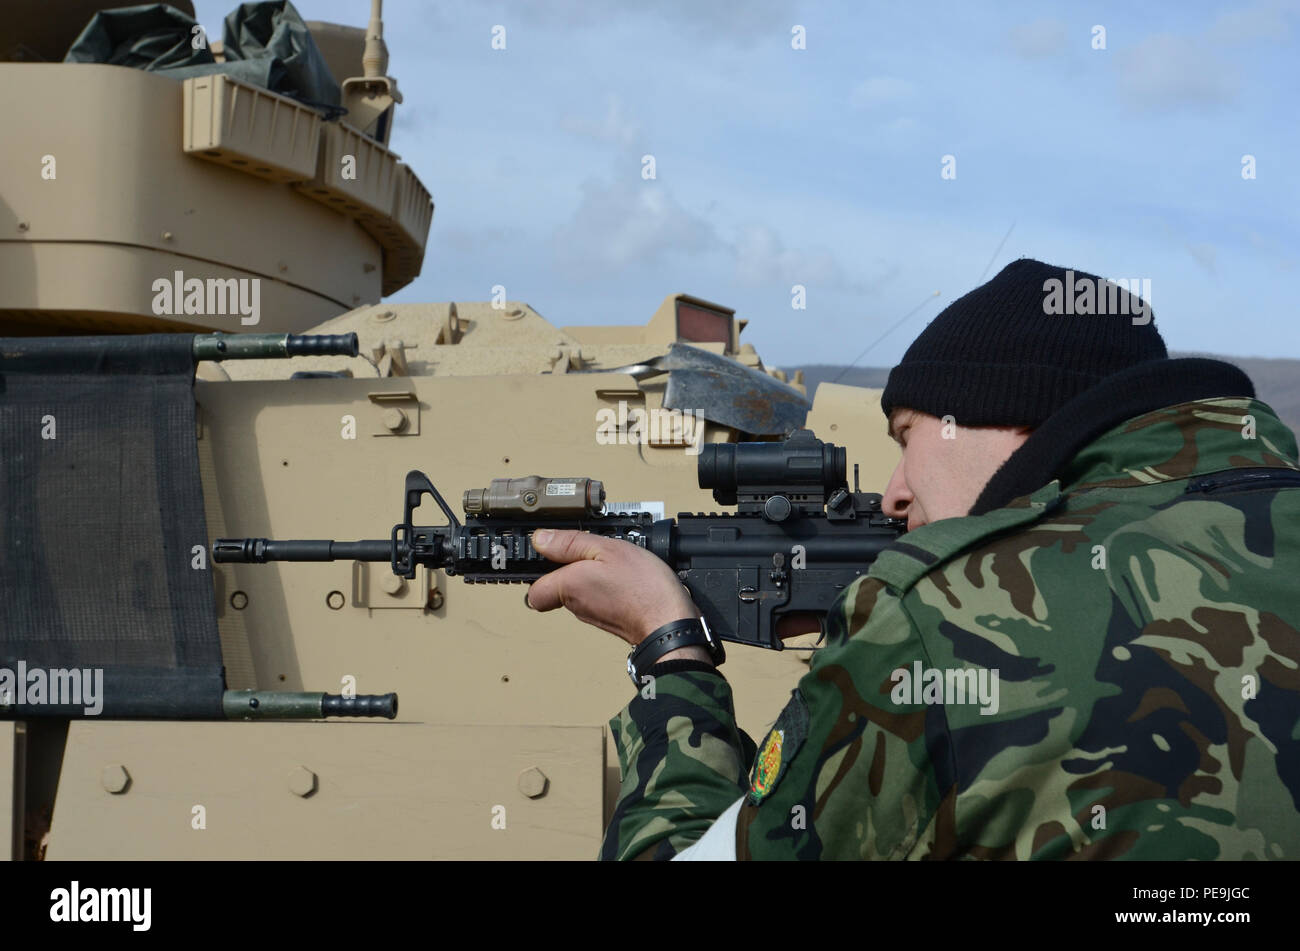 A Bulgarian soldier looks through an Advanced Combat Optical Gunsight (ACOG) during Exercise Peace Sentinel at Novo Selo Training Center, Bulgaria, Nov. 22, 2015. (U.S. Army photo by Staff Sgt. Steven M. Colvin/Released) - Stock Image